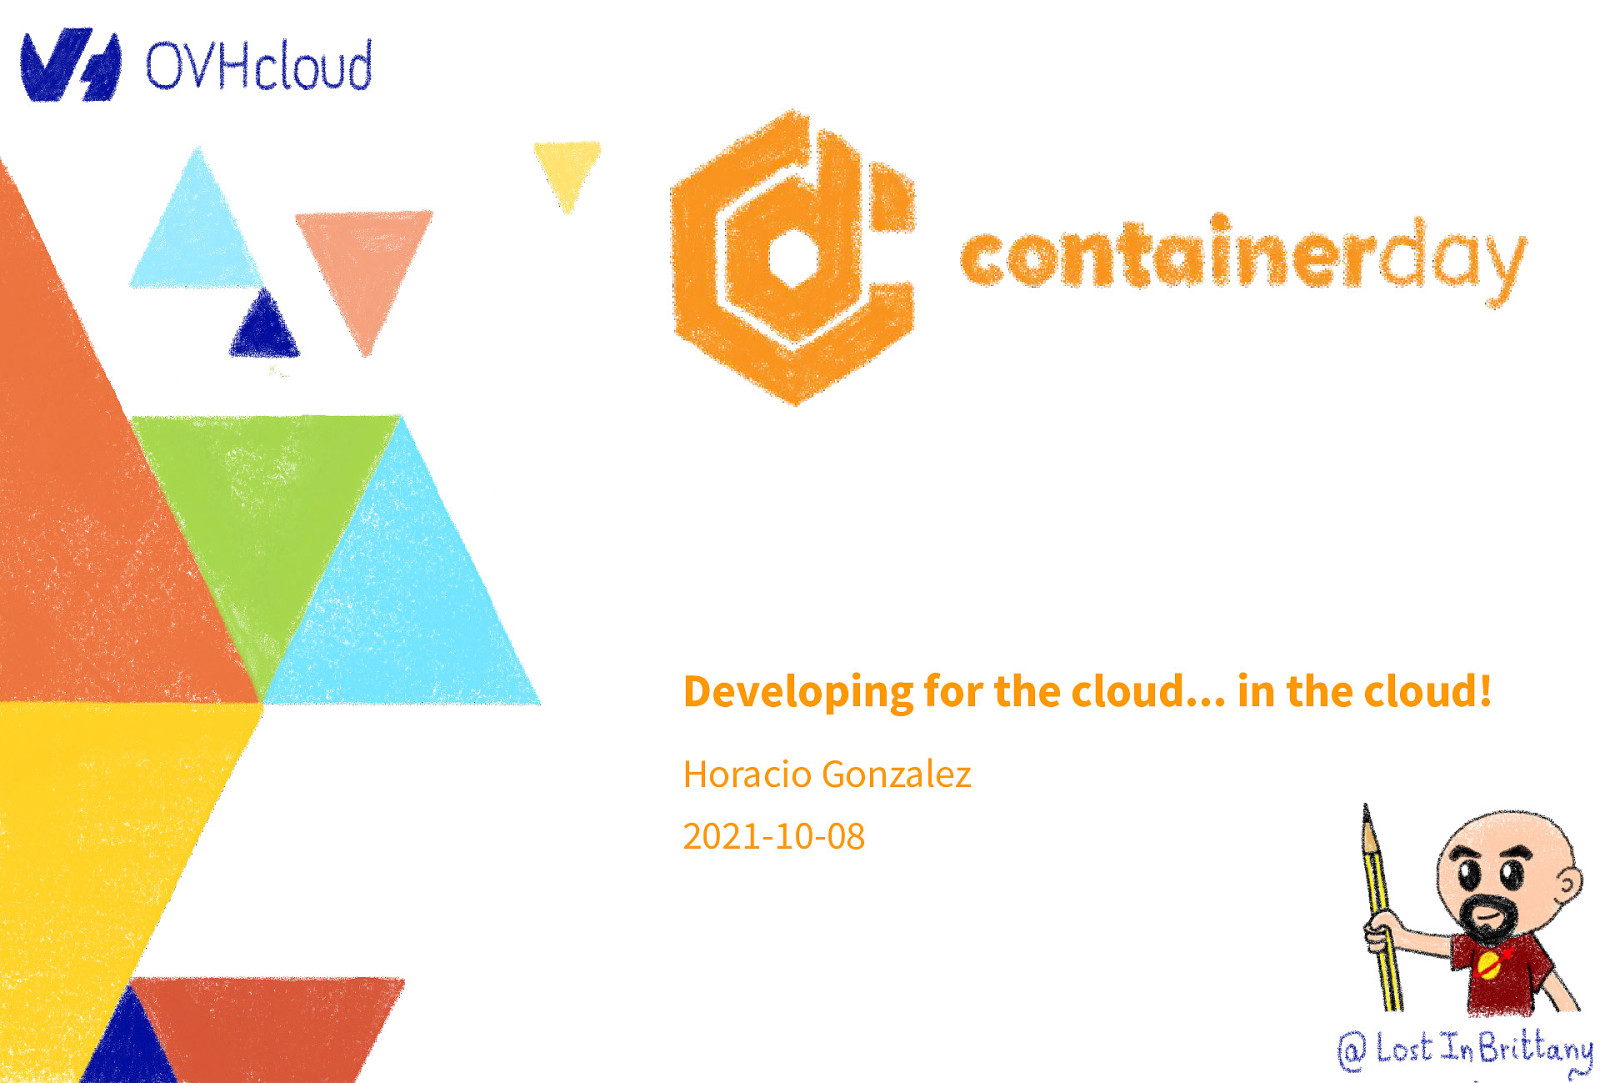 Developing for the cloud… in the cloud!